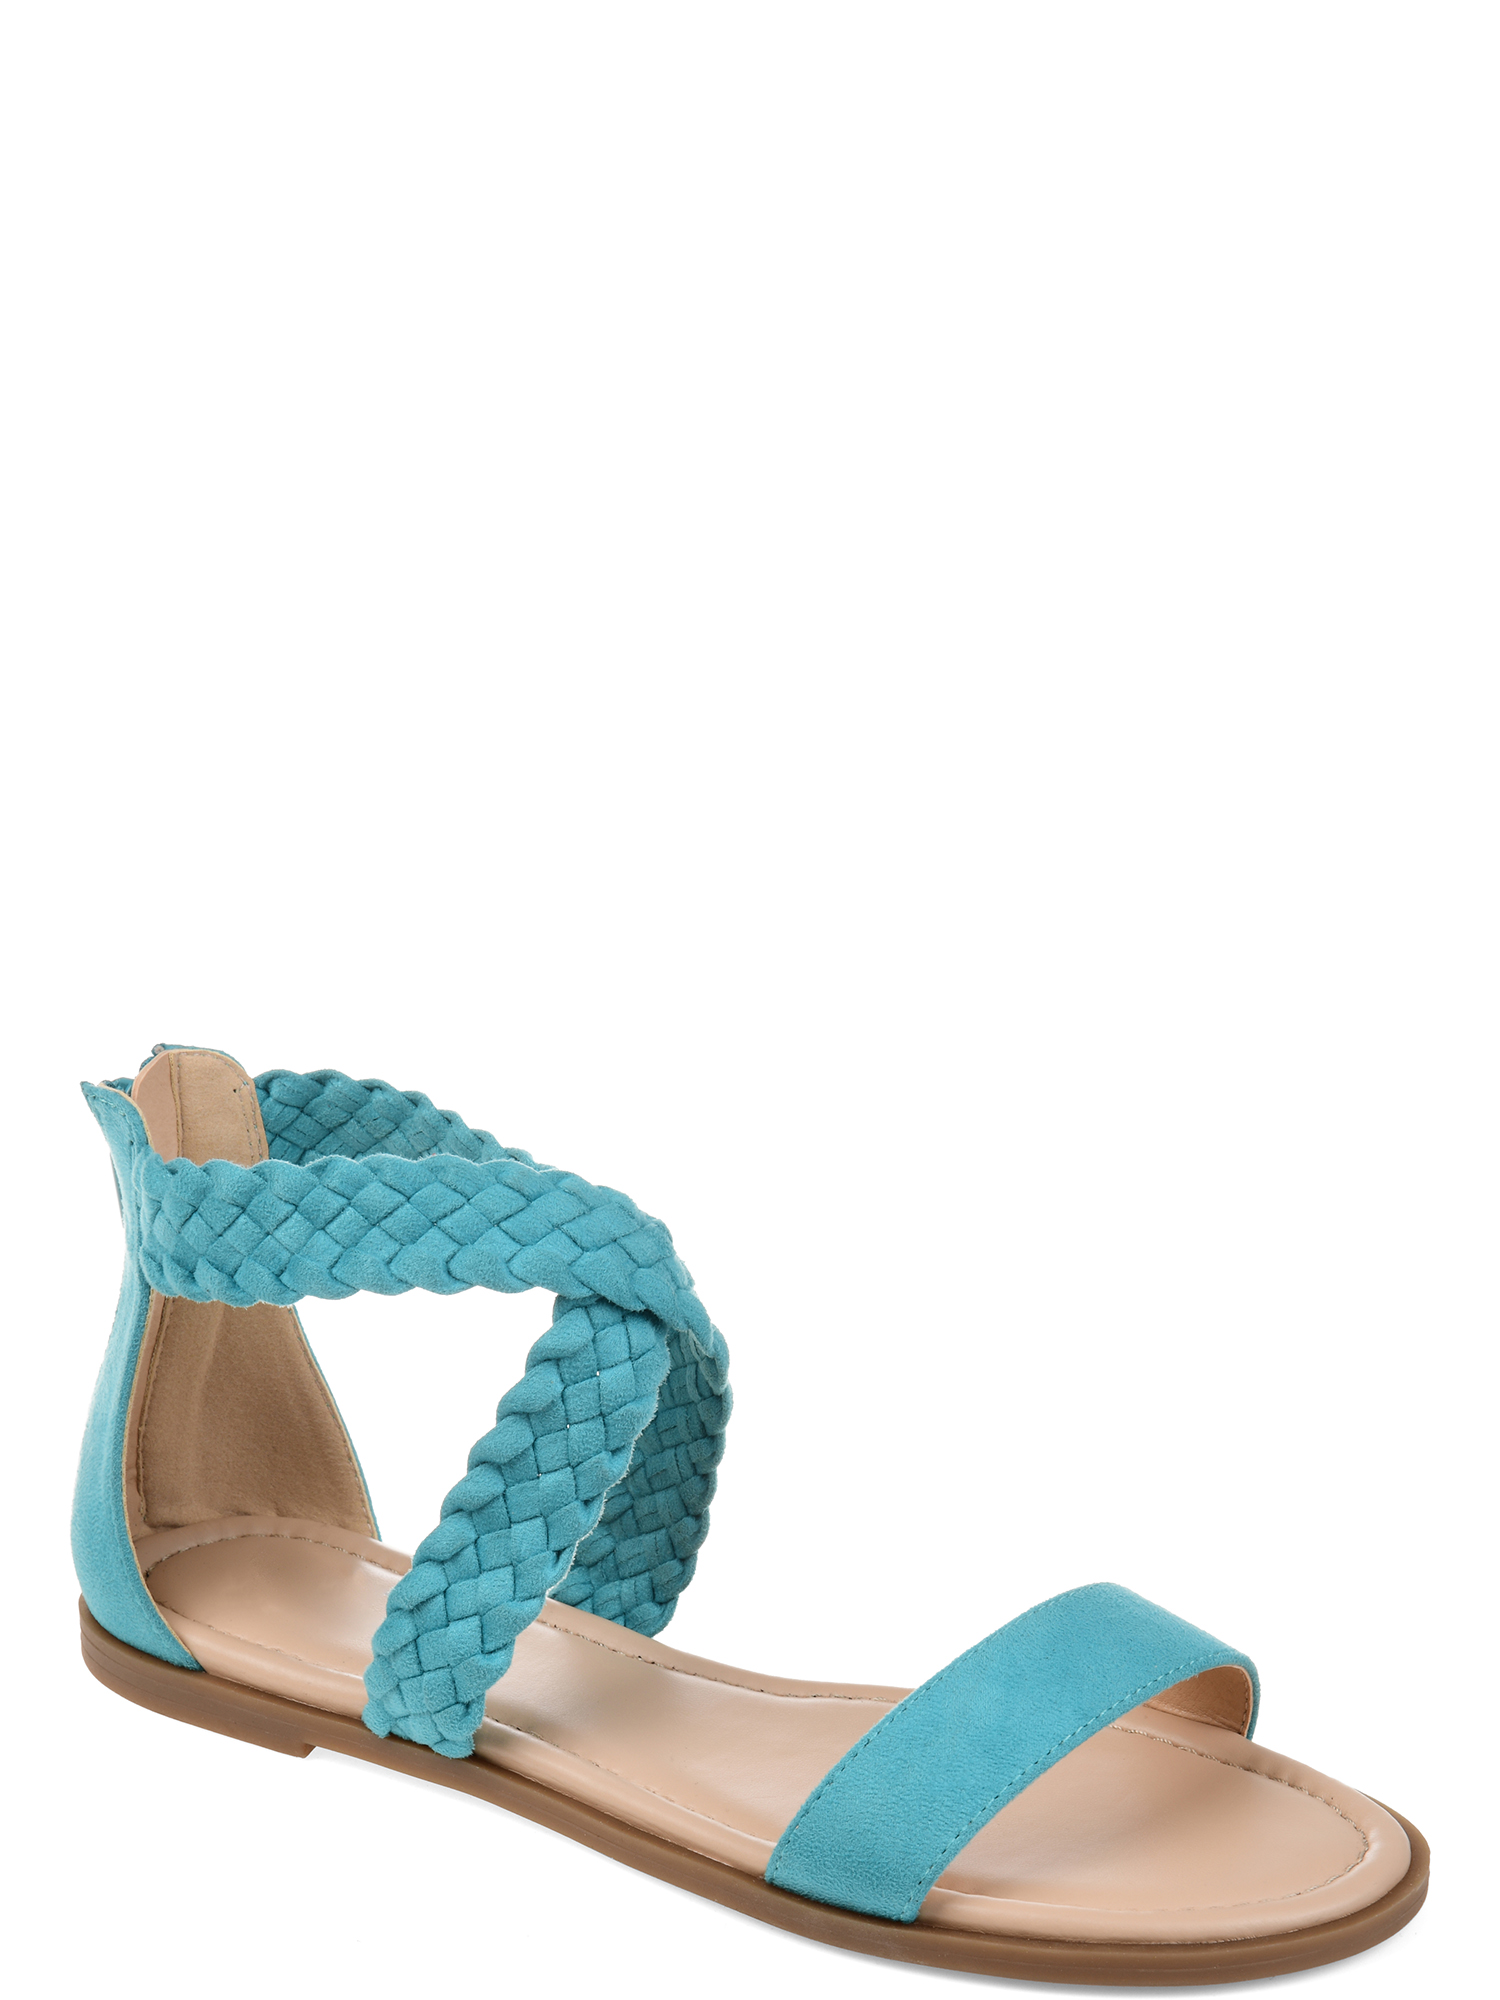 Brinley Co. Womens Comfort Woven Gladiator Sandal